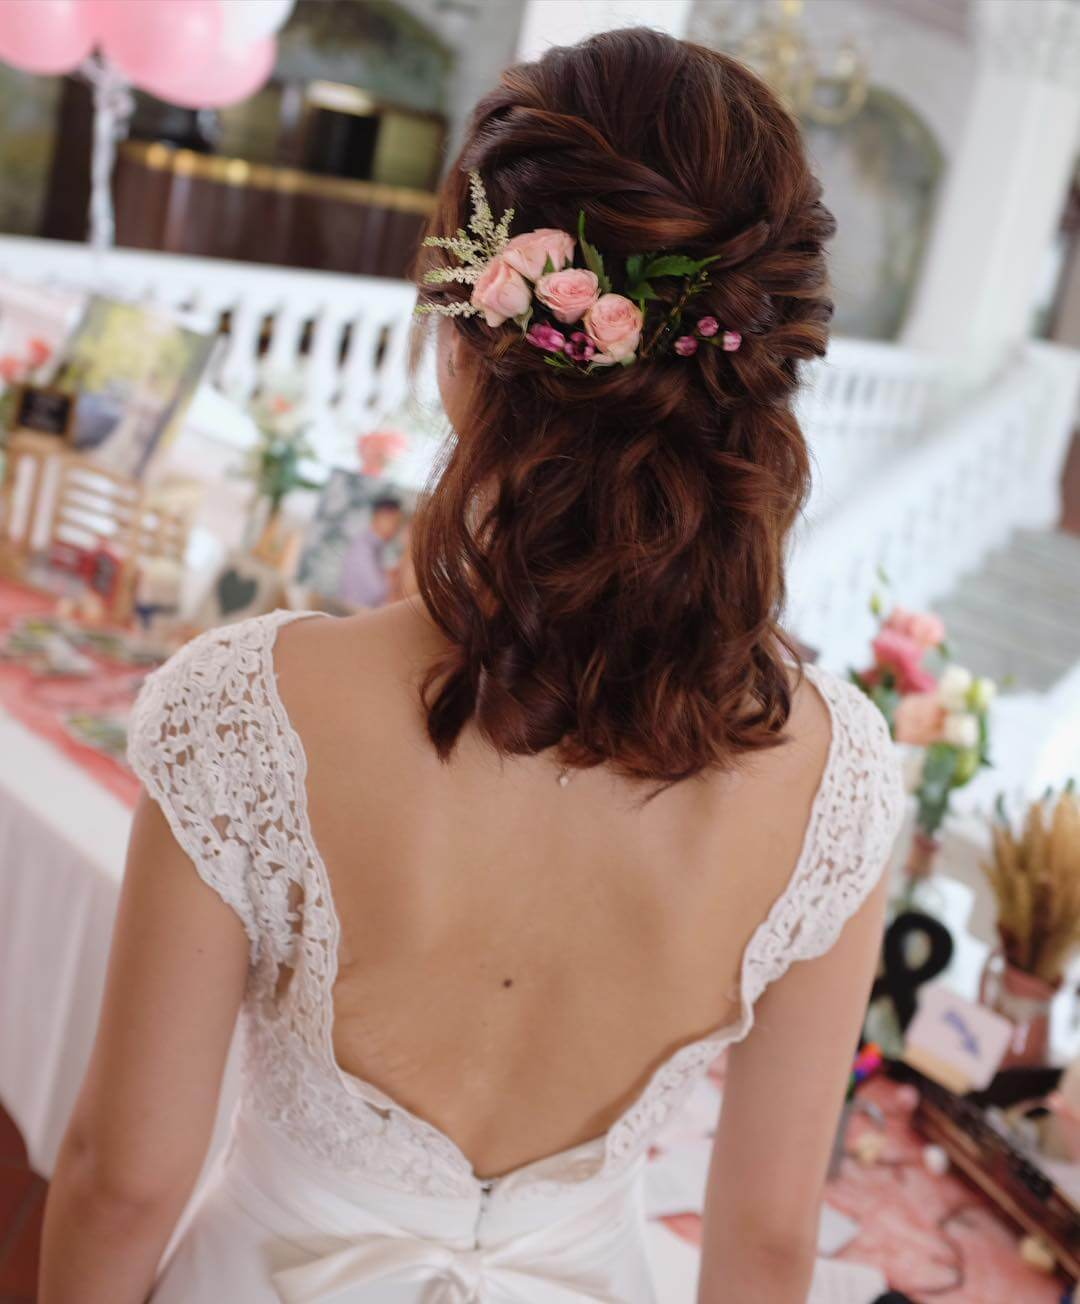 Wedding Hairstyle For Natural Curly Hair: 25+ Curly Wedding Hairstyle Ideas, Designs